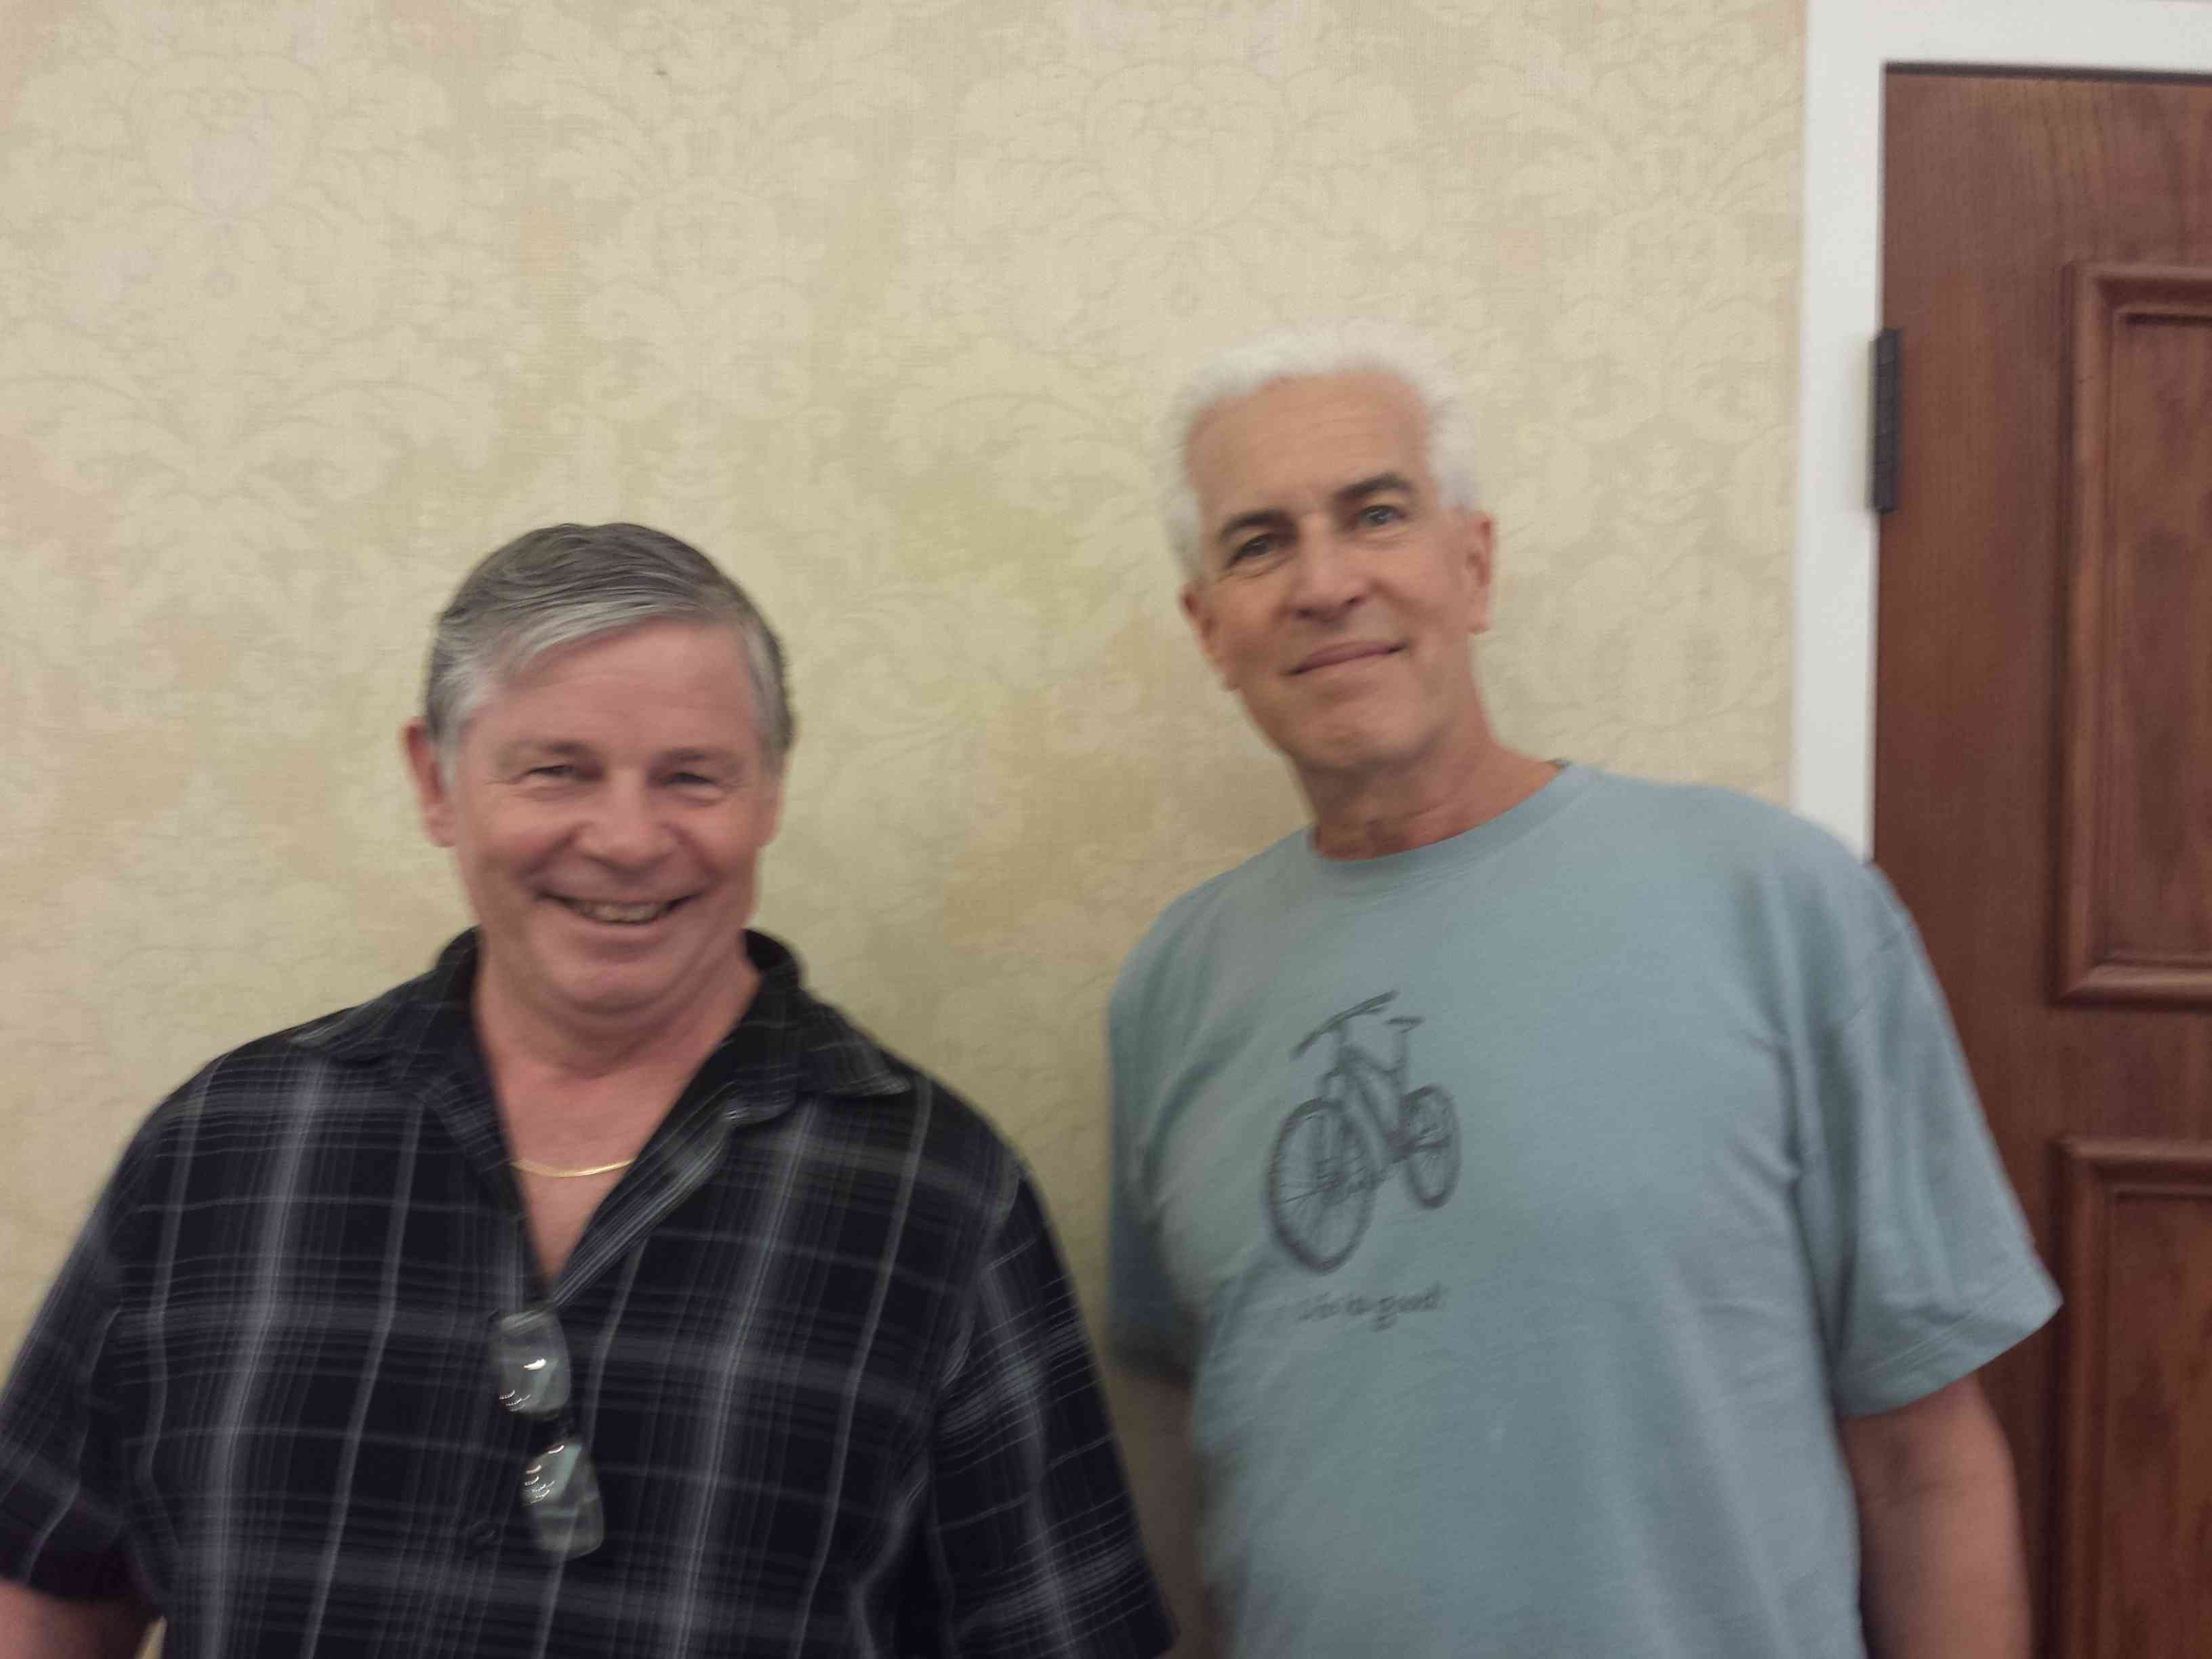 Wed PM Fast Pairs, Joel Datloff, Vancouver, WA and Roger McNay Beaverton,OR